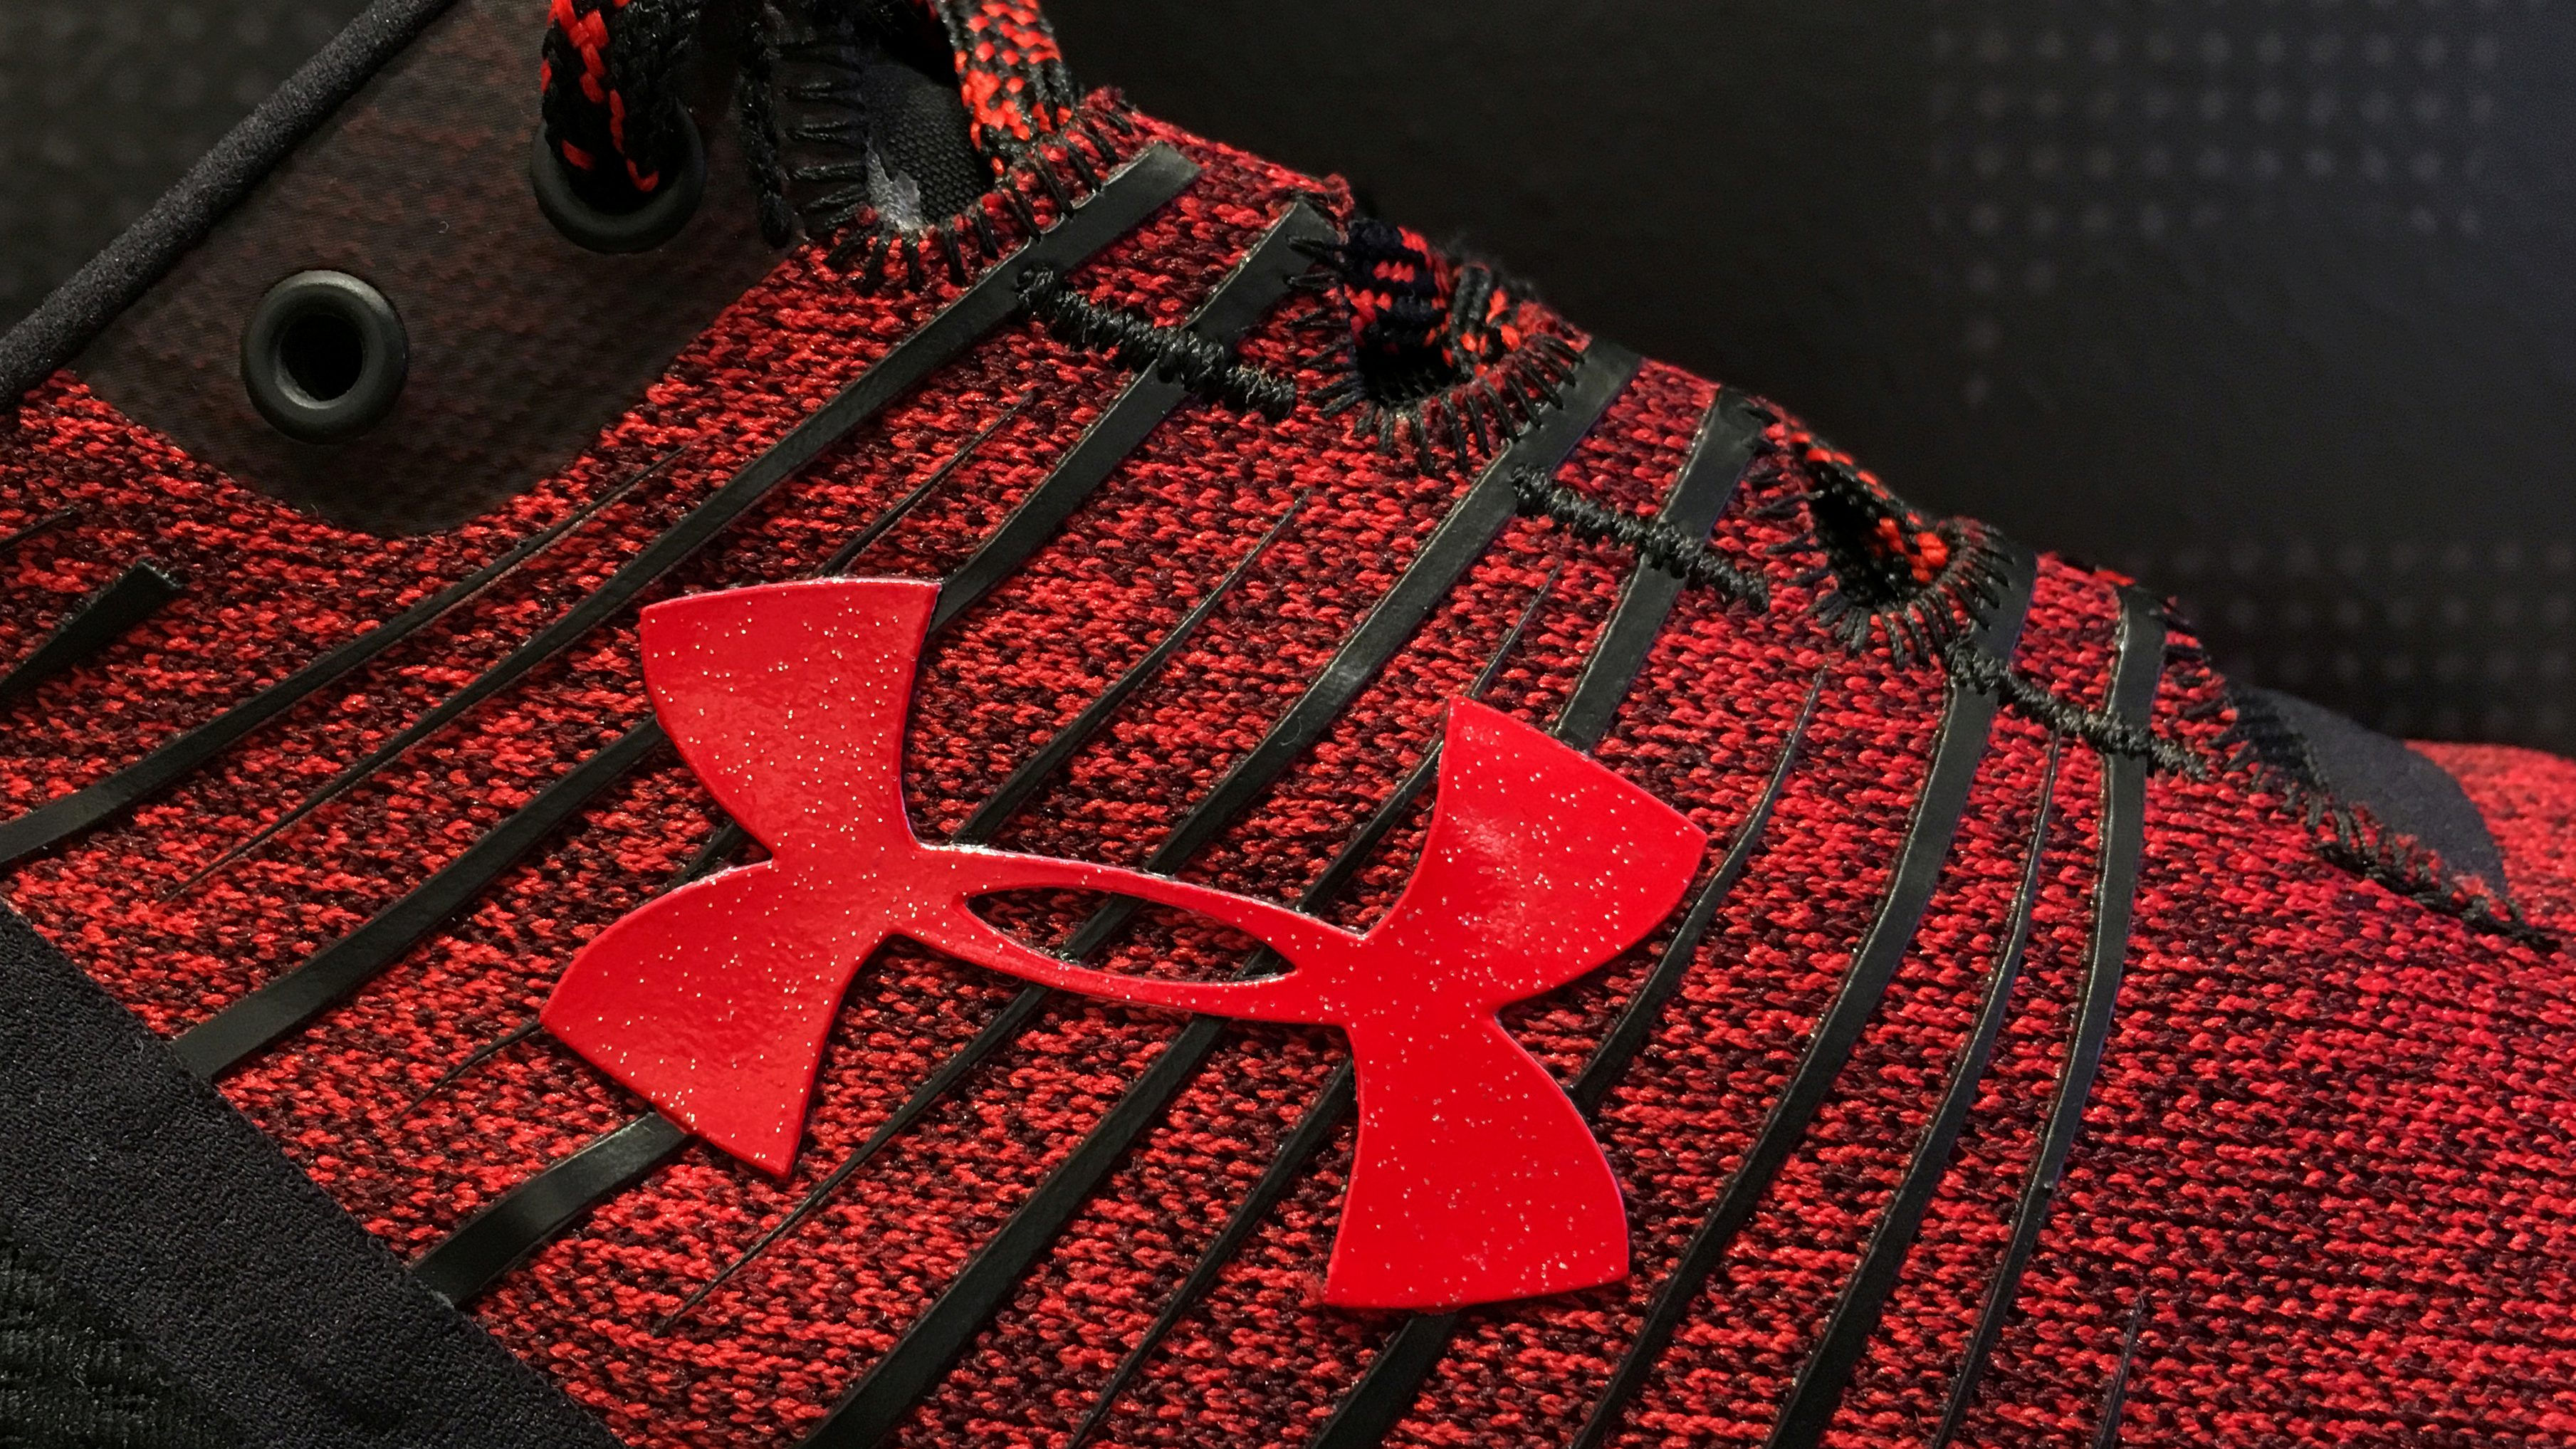 A red Under Armour sneaker